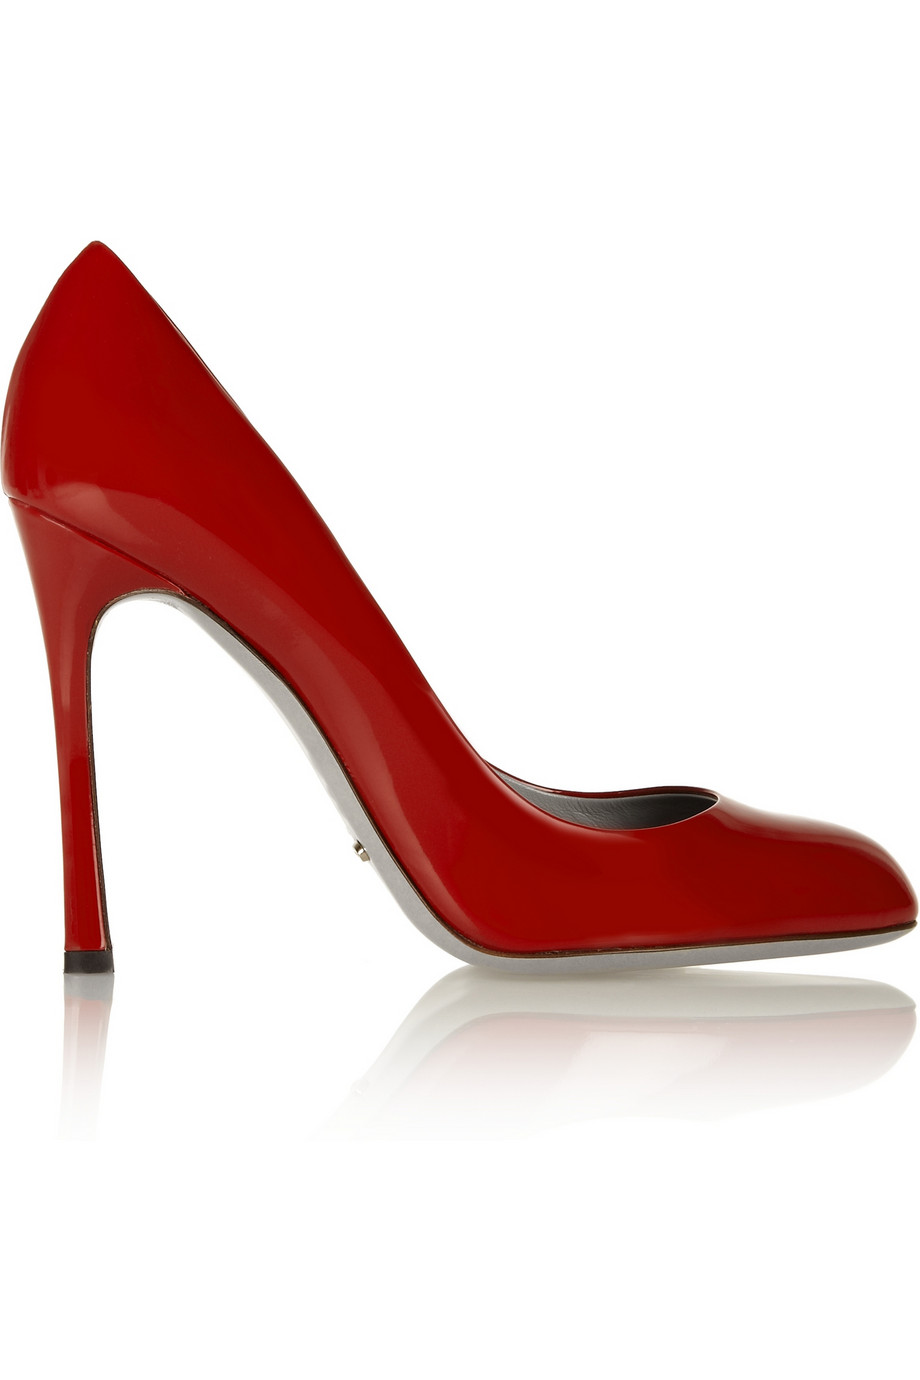 Patent-leather pumps | Sergio Rossi | 50% off | THE OUTNET